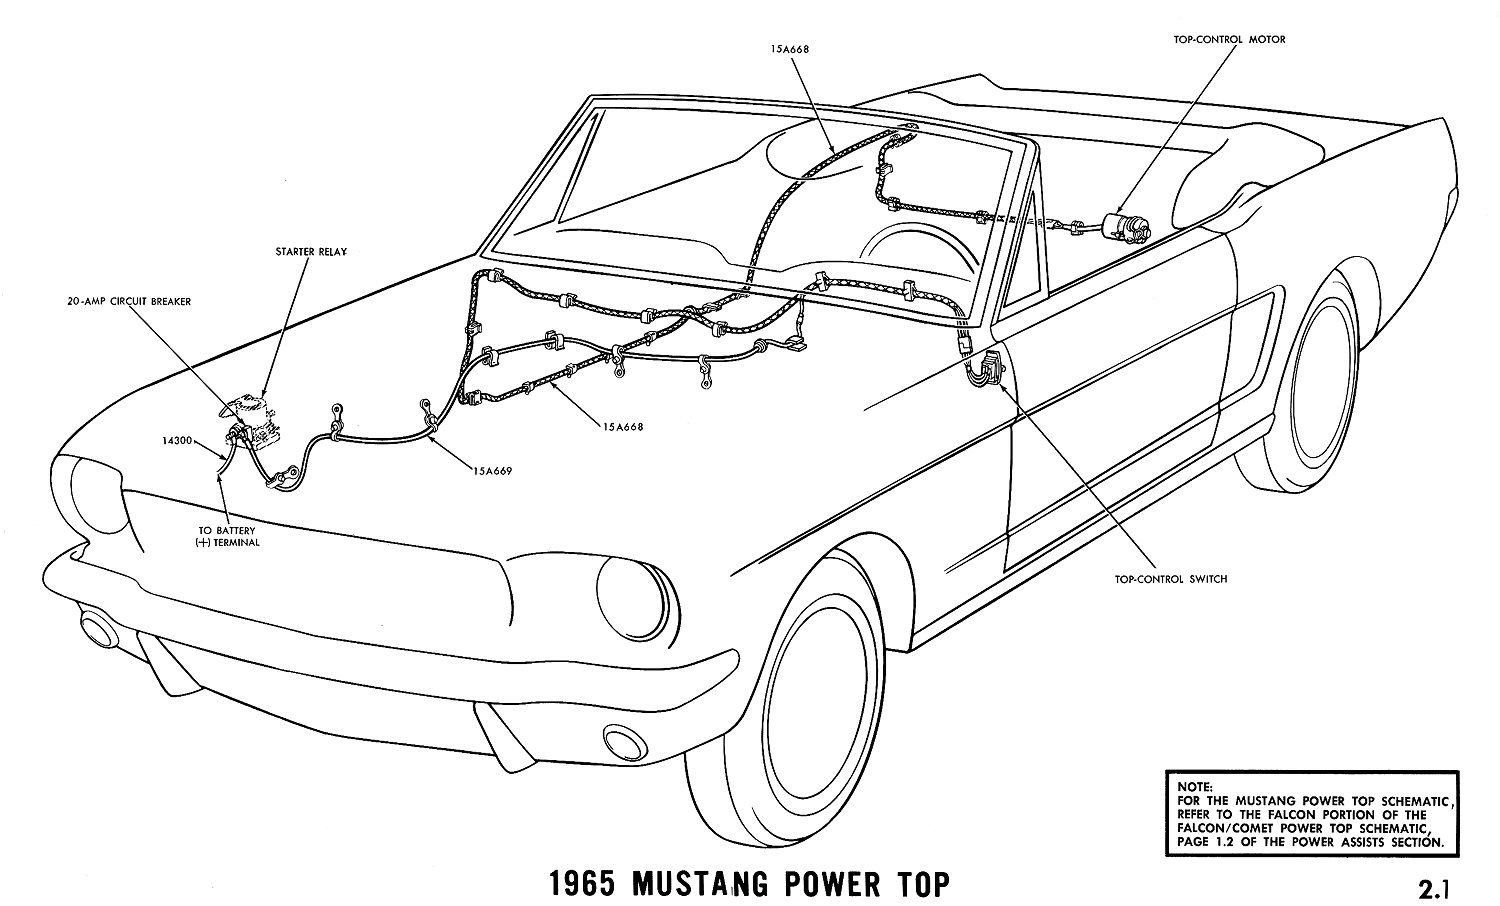 1965 Mustang Wiring Diagrams Average Joe Restoration 1967 Chevelle Starter Diagram Power Top Pictorial Or Schematic